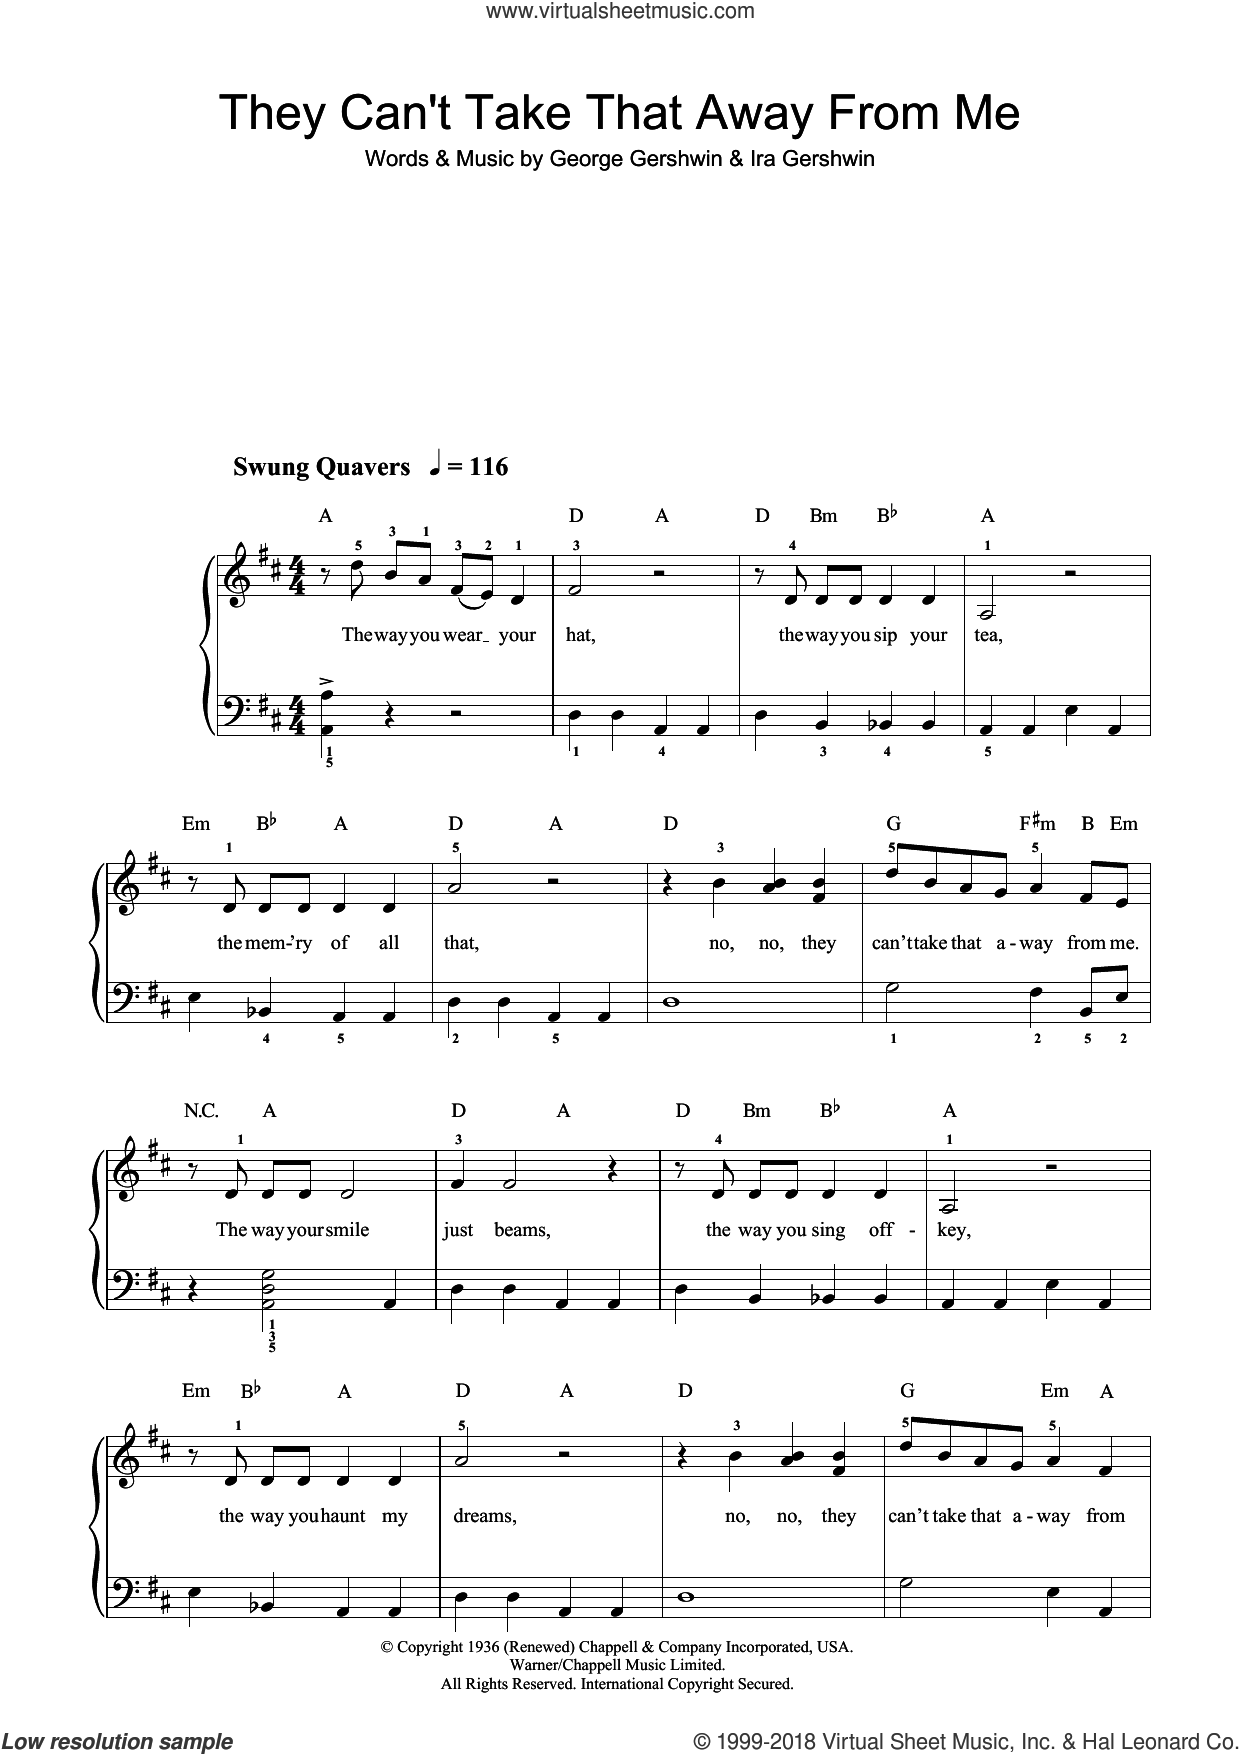 They Can't Take That Away From Me sheet music for piano solo (chords) by Ira Gershwin